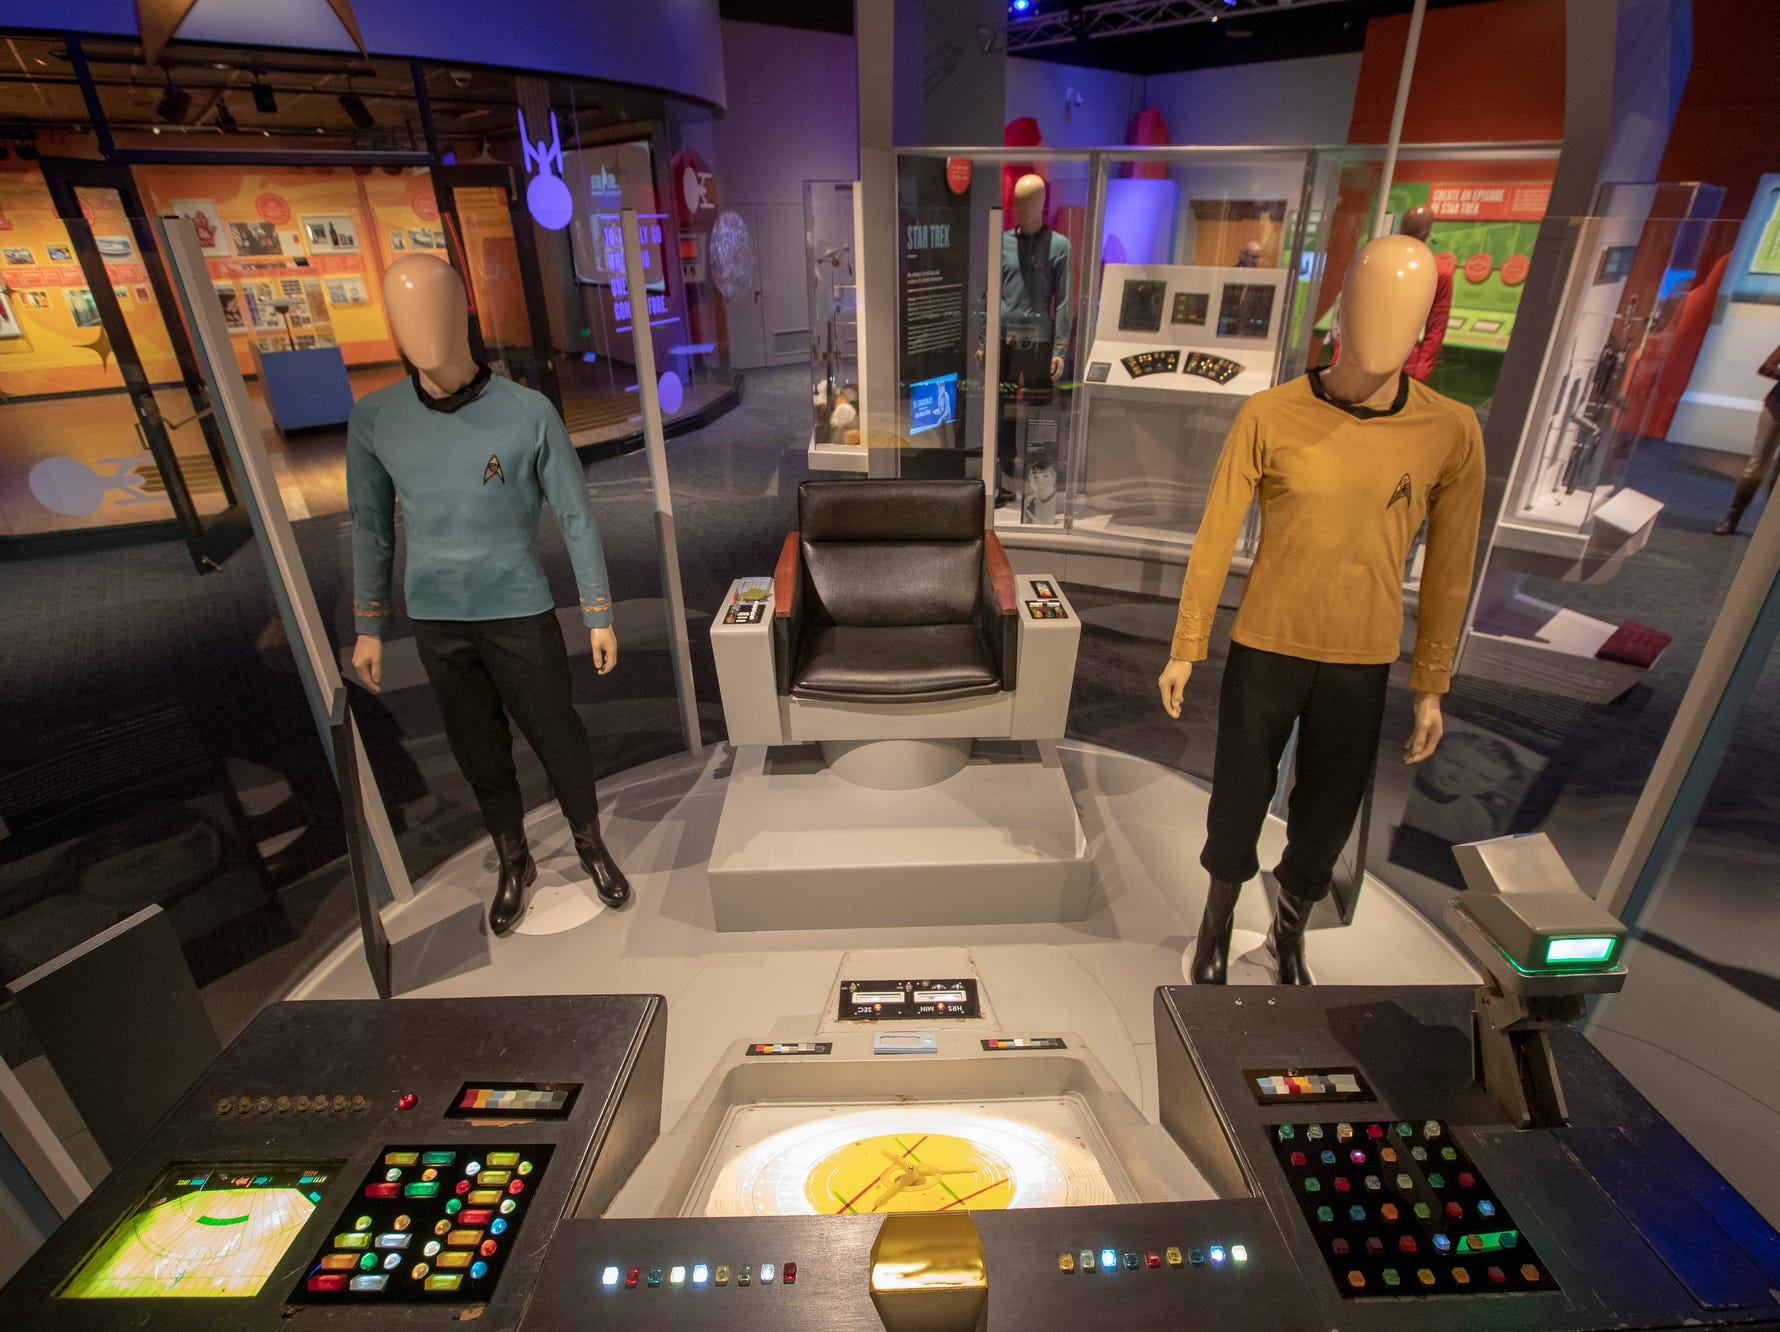 """The bridge from the original """"Star Trek"""" TV show is seen at The Children's Museum of Indianapolis, Wednesday, Jan. 23, 2019. The """"Star Trek: Exploring New Worlds"""" exhibit is made up of set pieces, ship models and outfits used during various Star Trek shows and movies and is on display at the museum from Feb. 2 through April 7, 2019."""